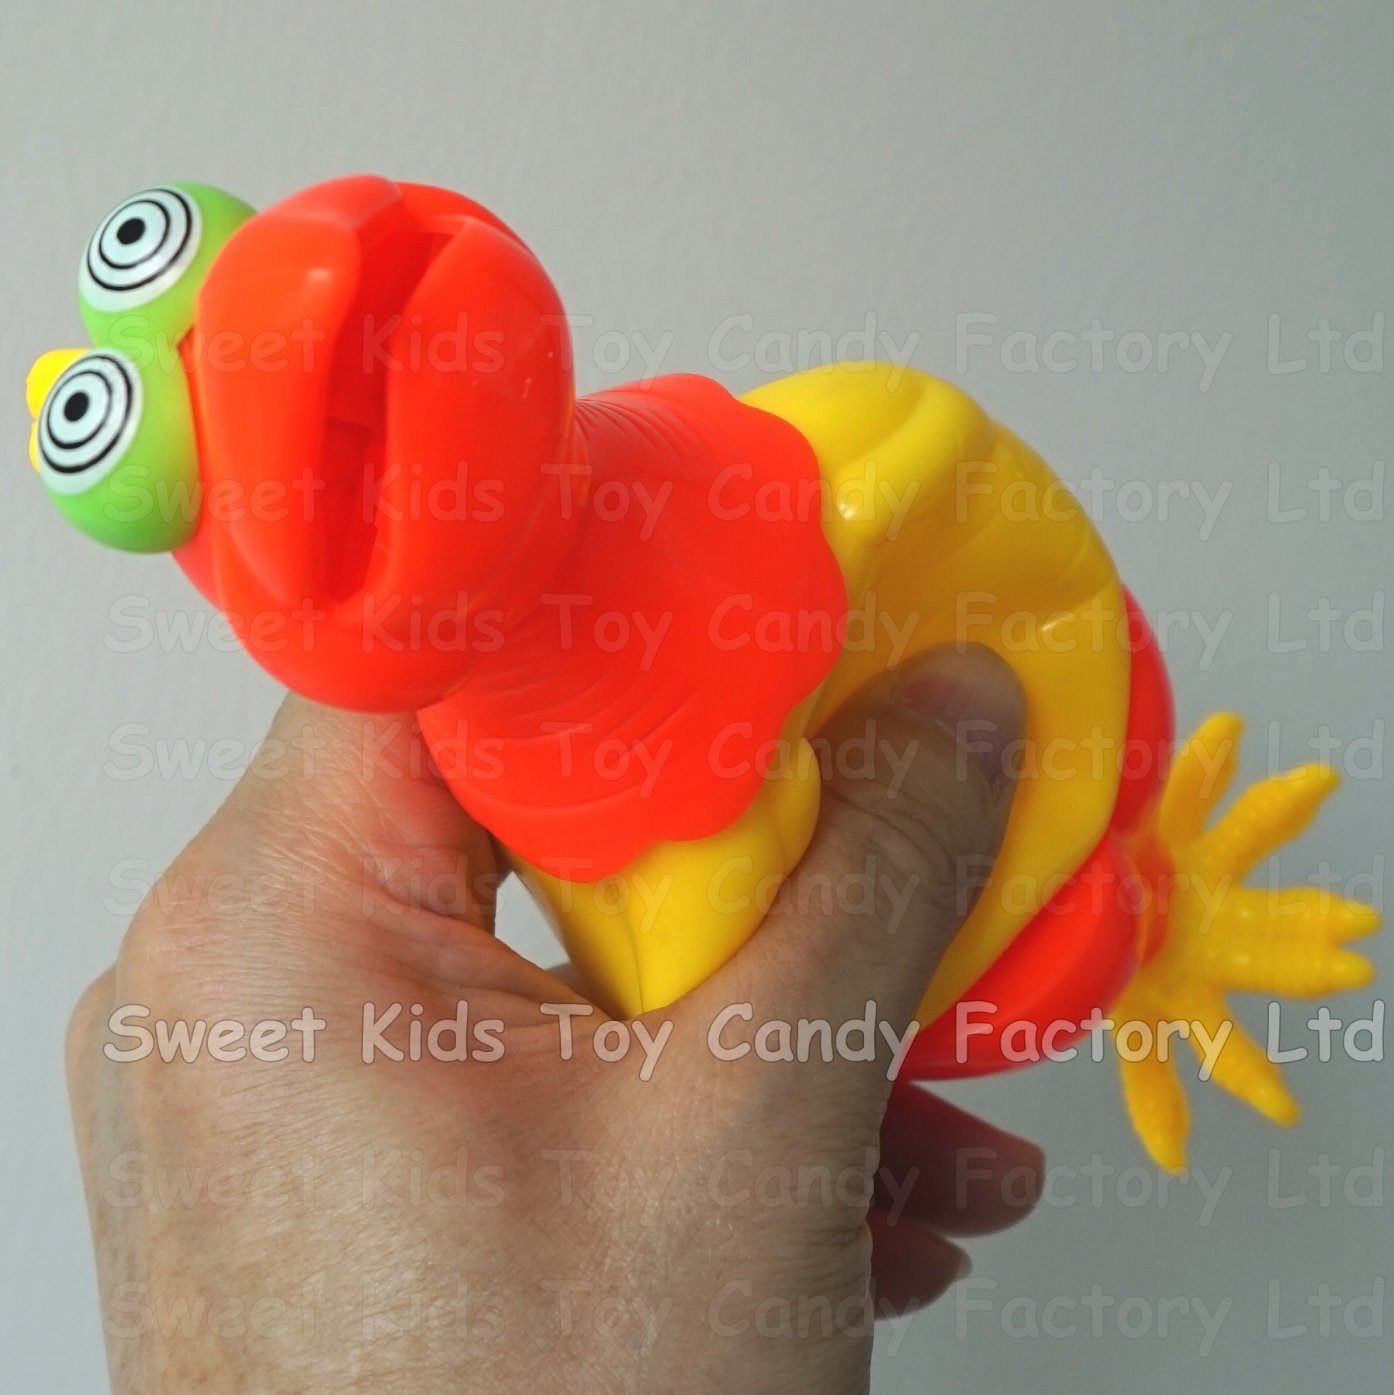 Screaming Rooster Toy with Candy in Toys (131140)